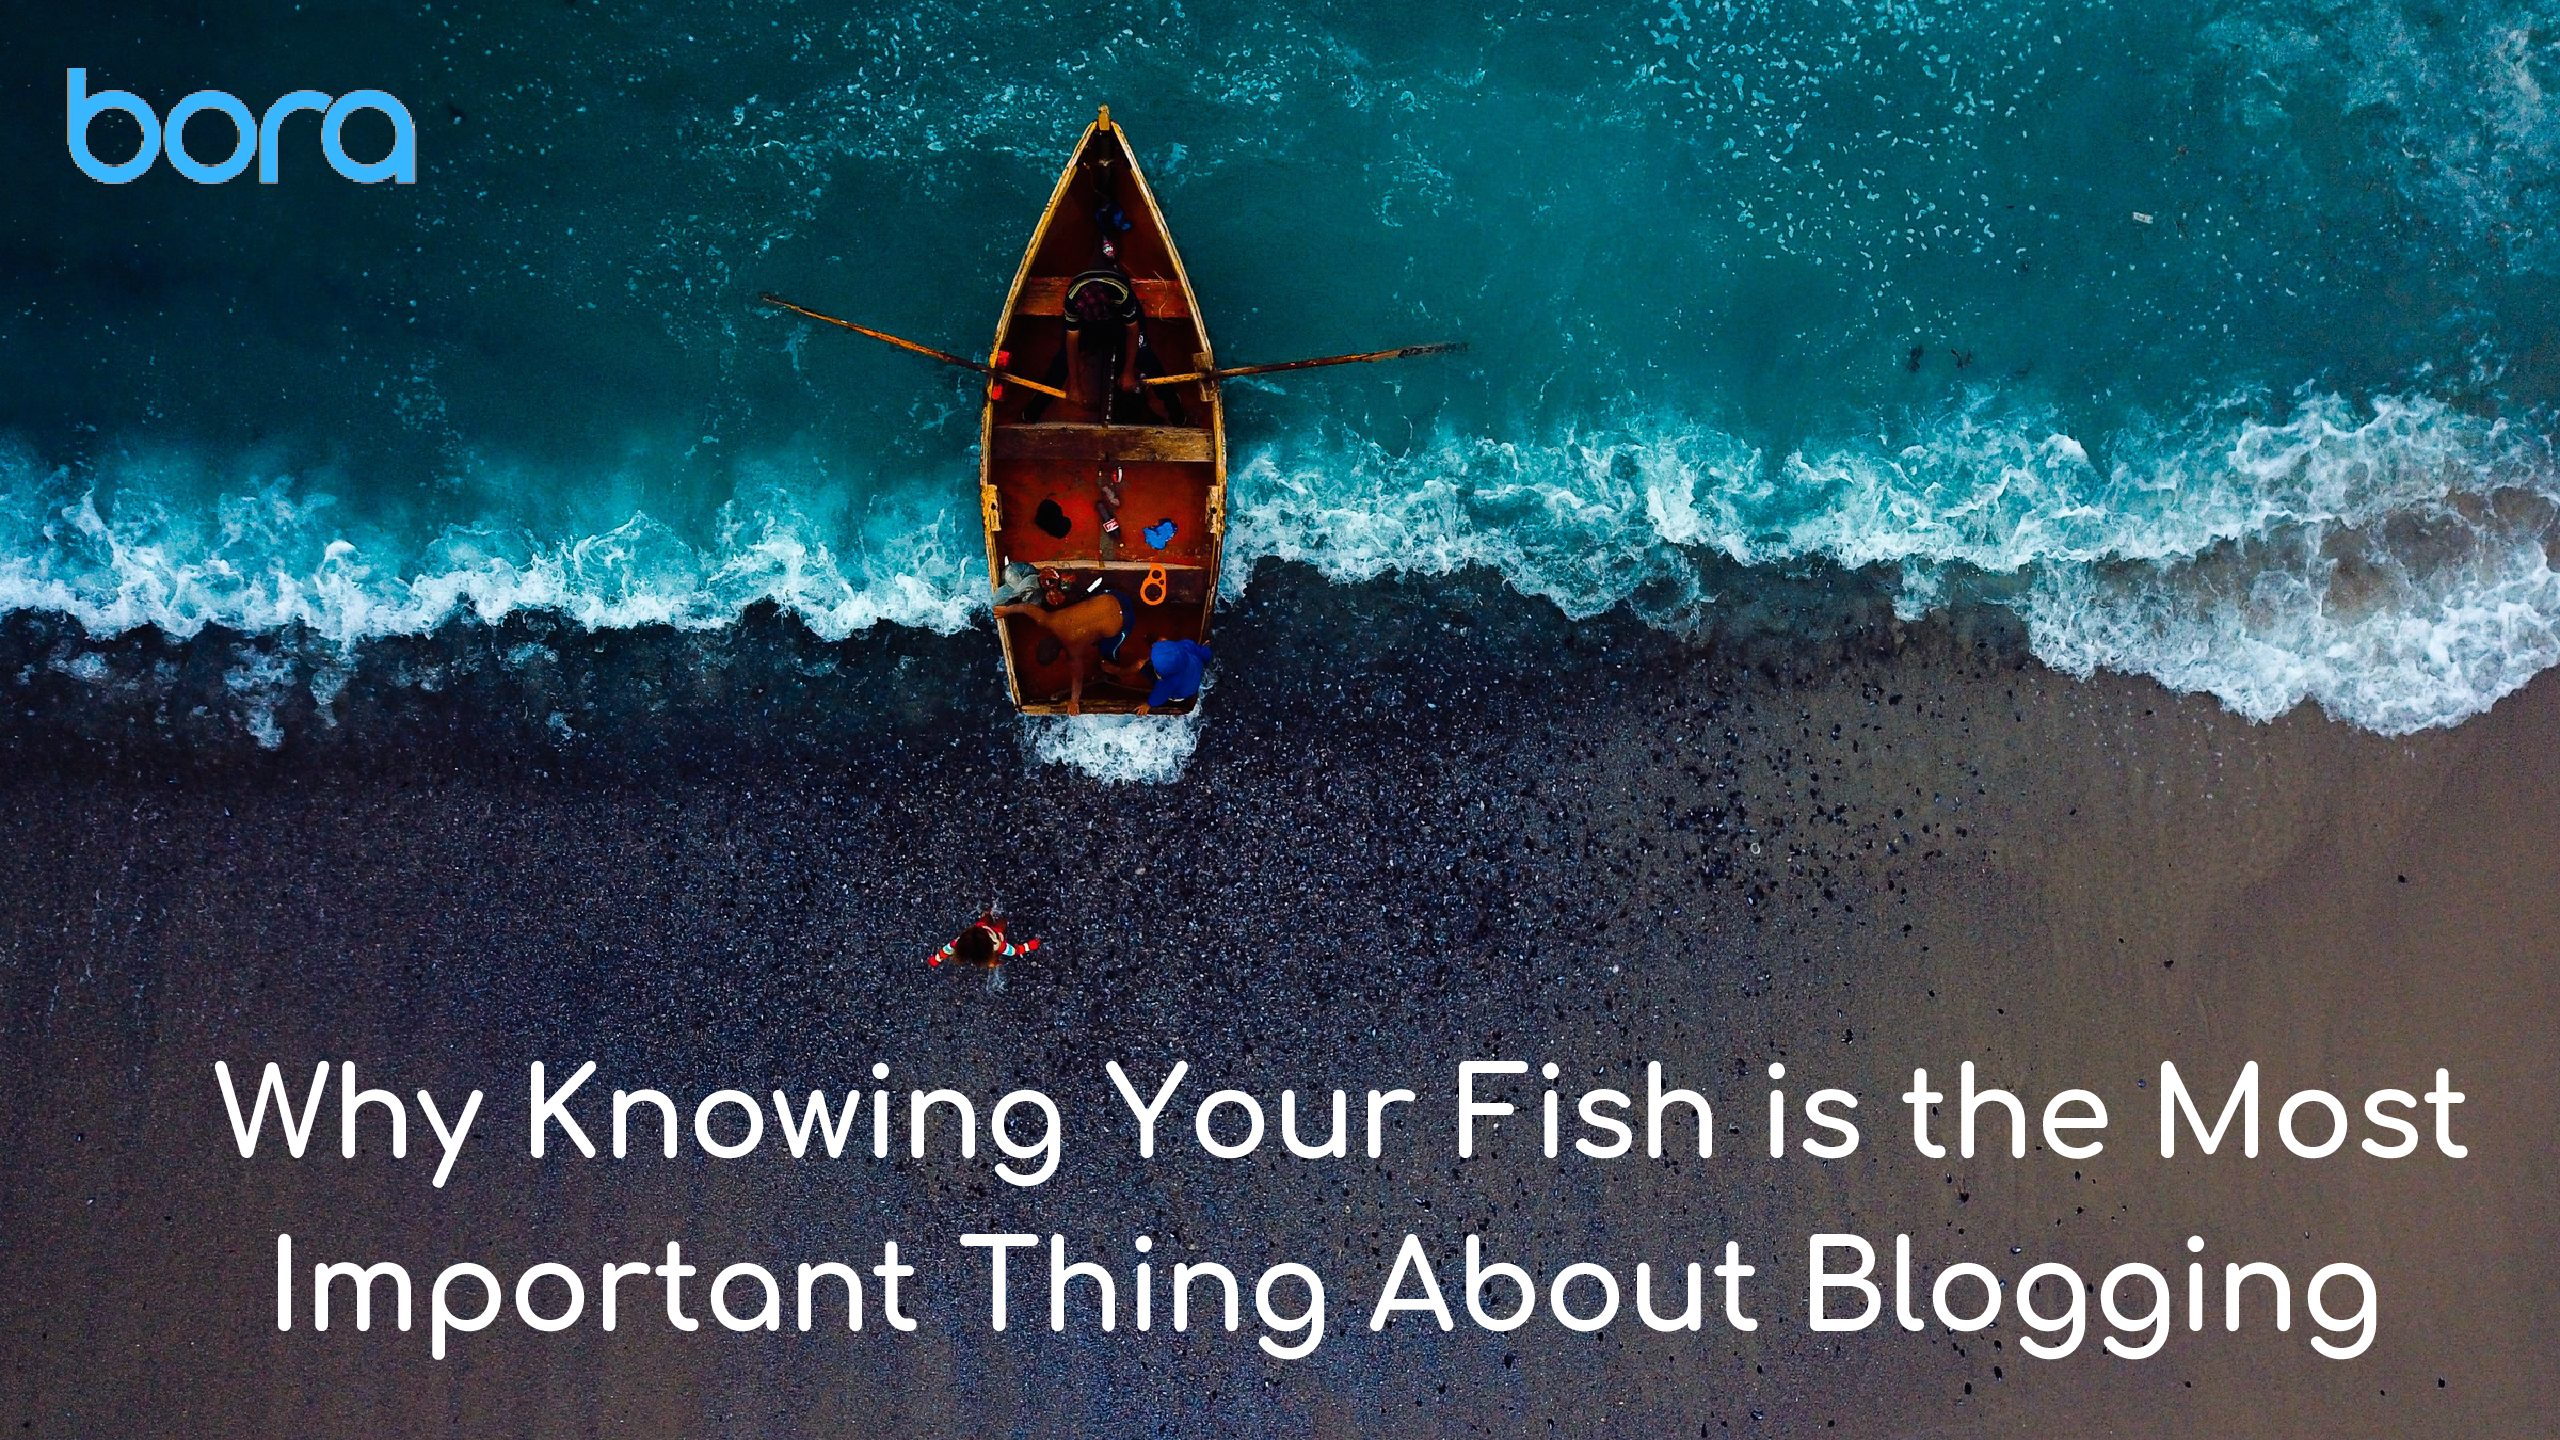 Why Knowing Your Fish is the Most Important Thing About Blogging